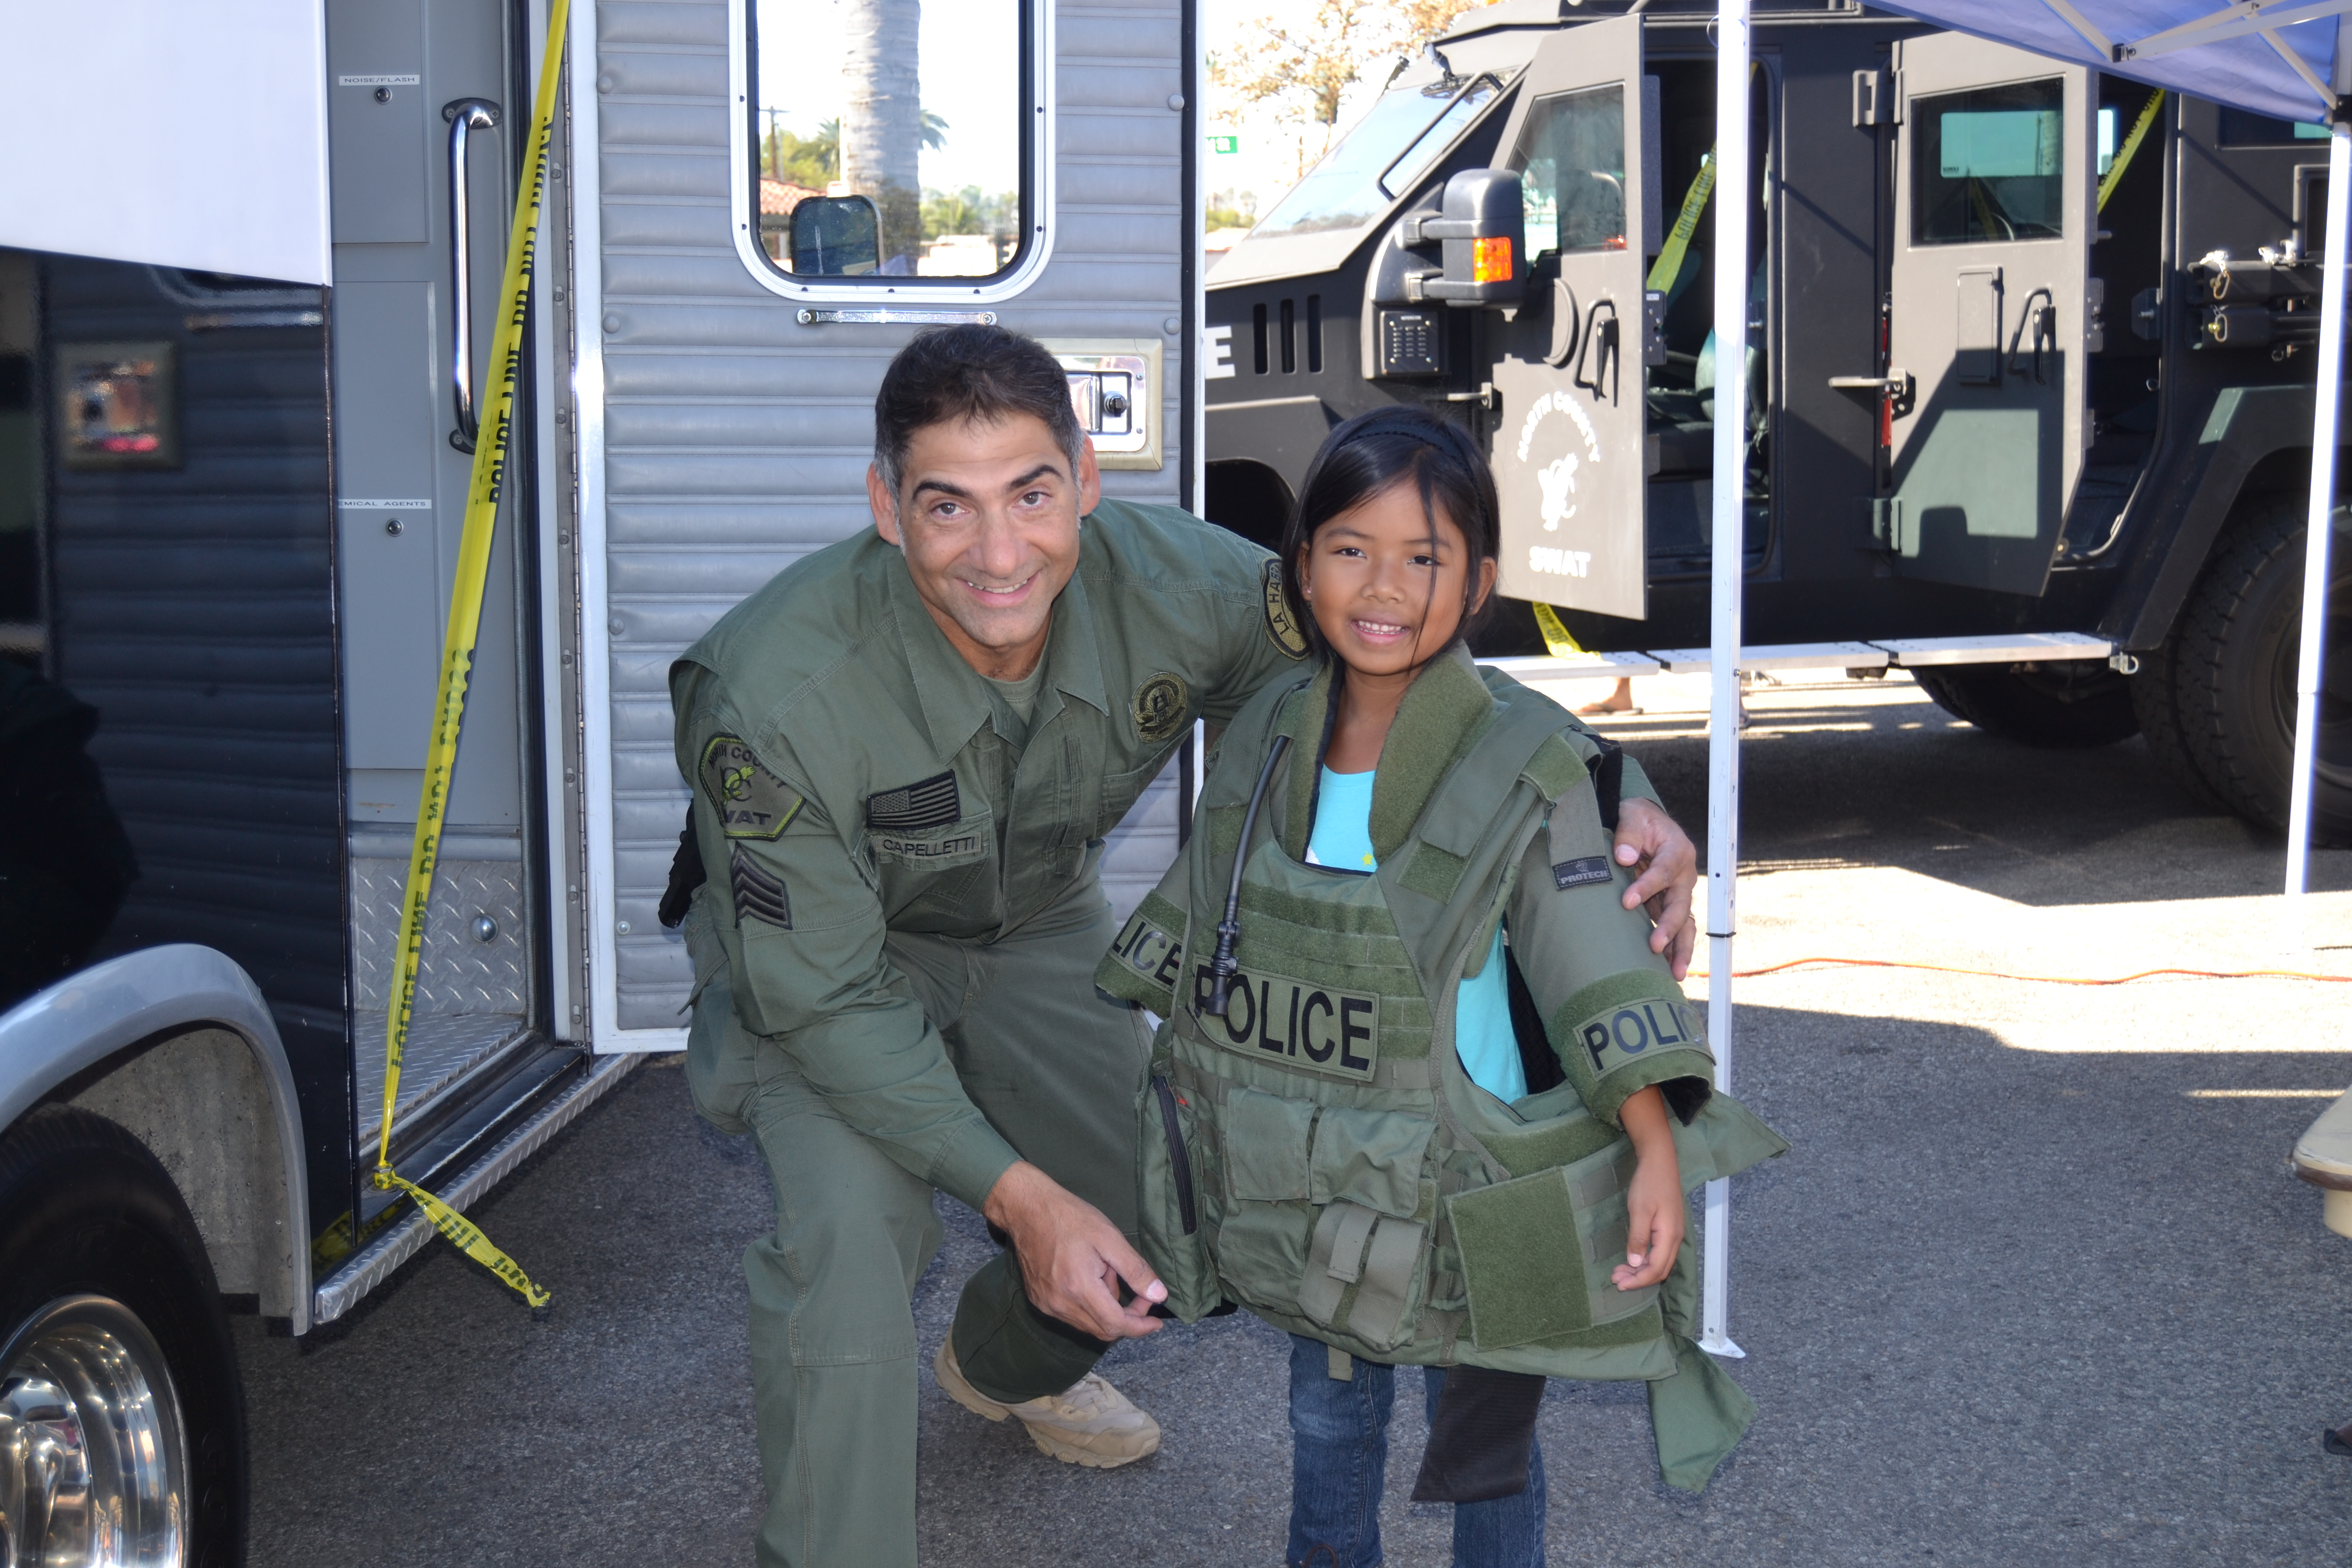 Police officer and young girl with Police Vest on